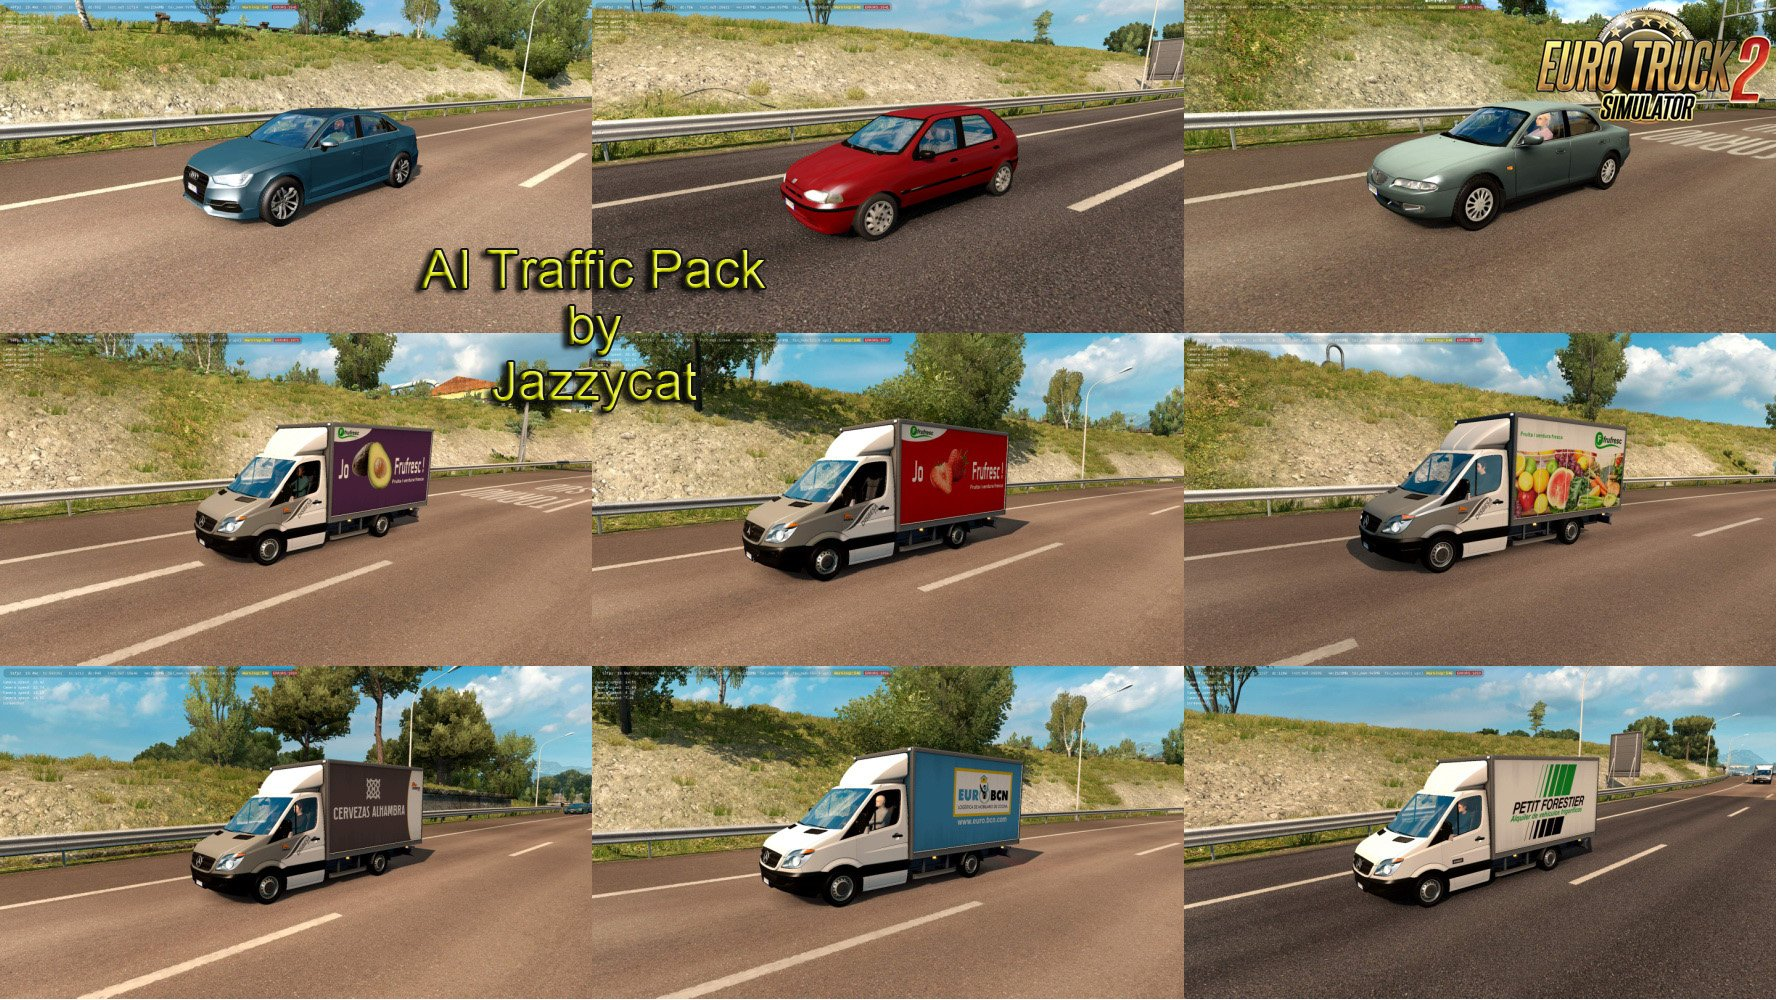 AI Traffic Pack v7.8 by Jazzycat